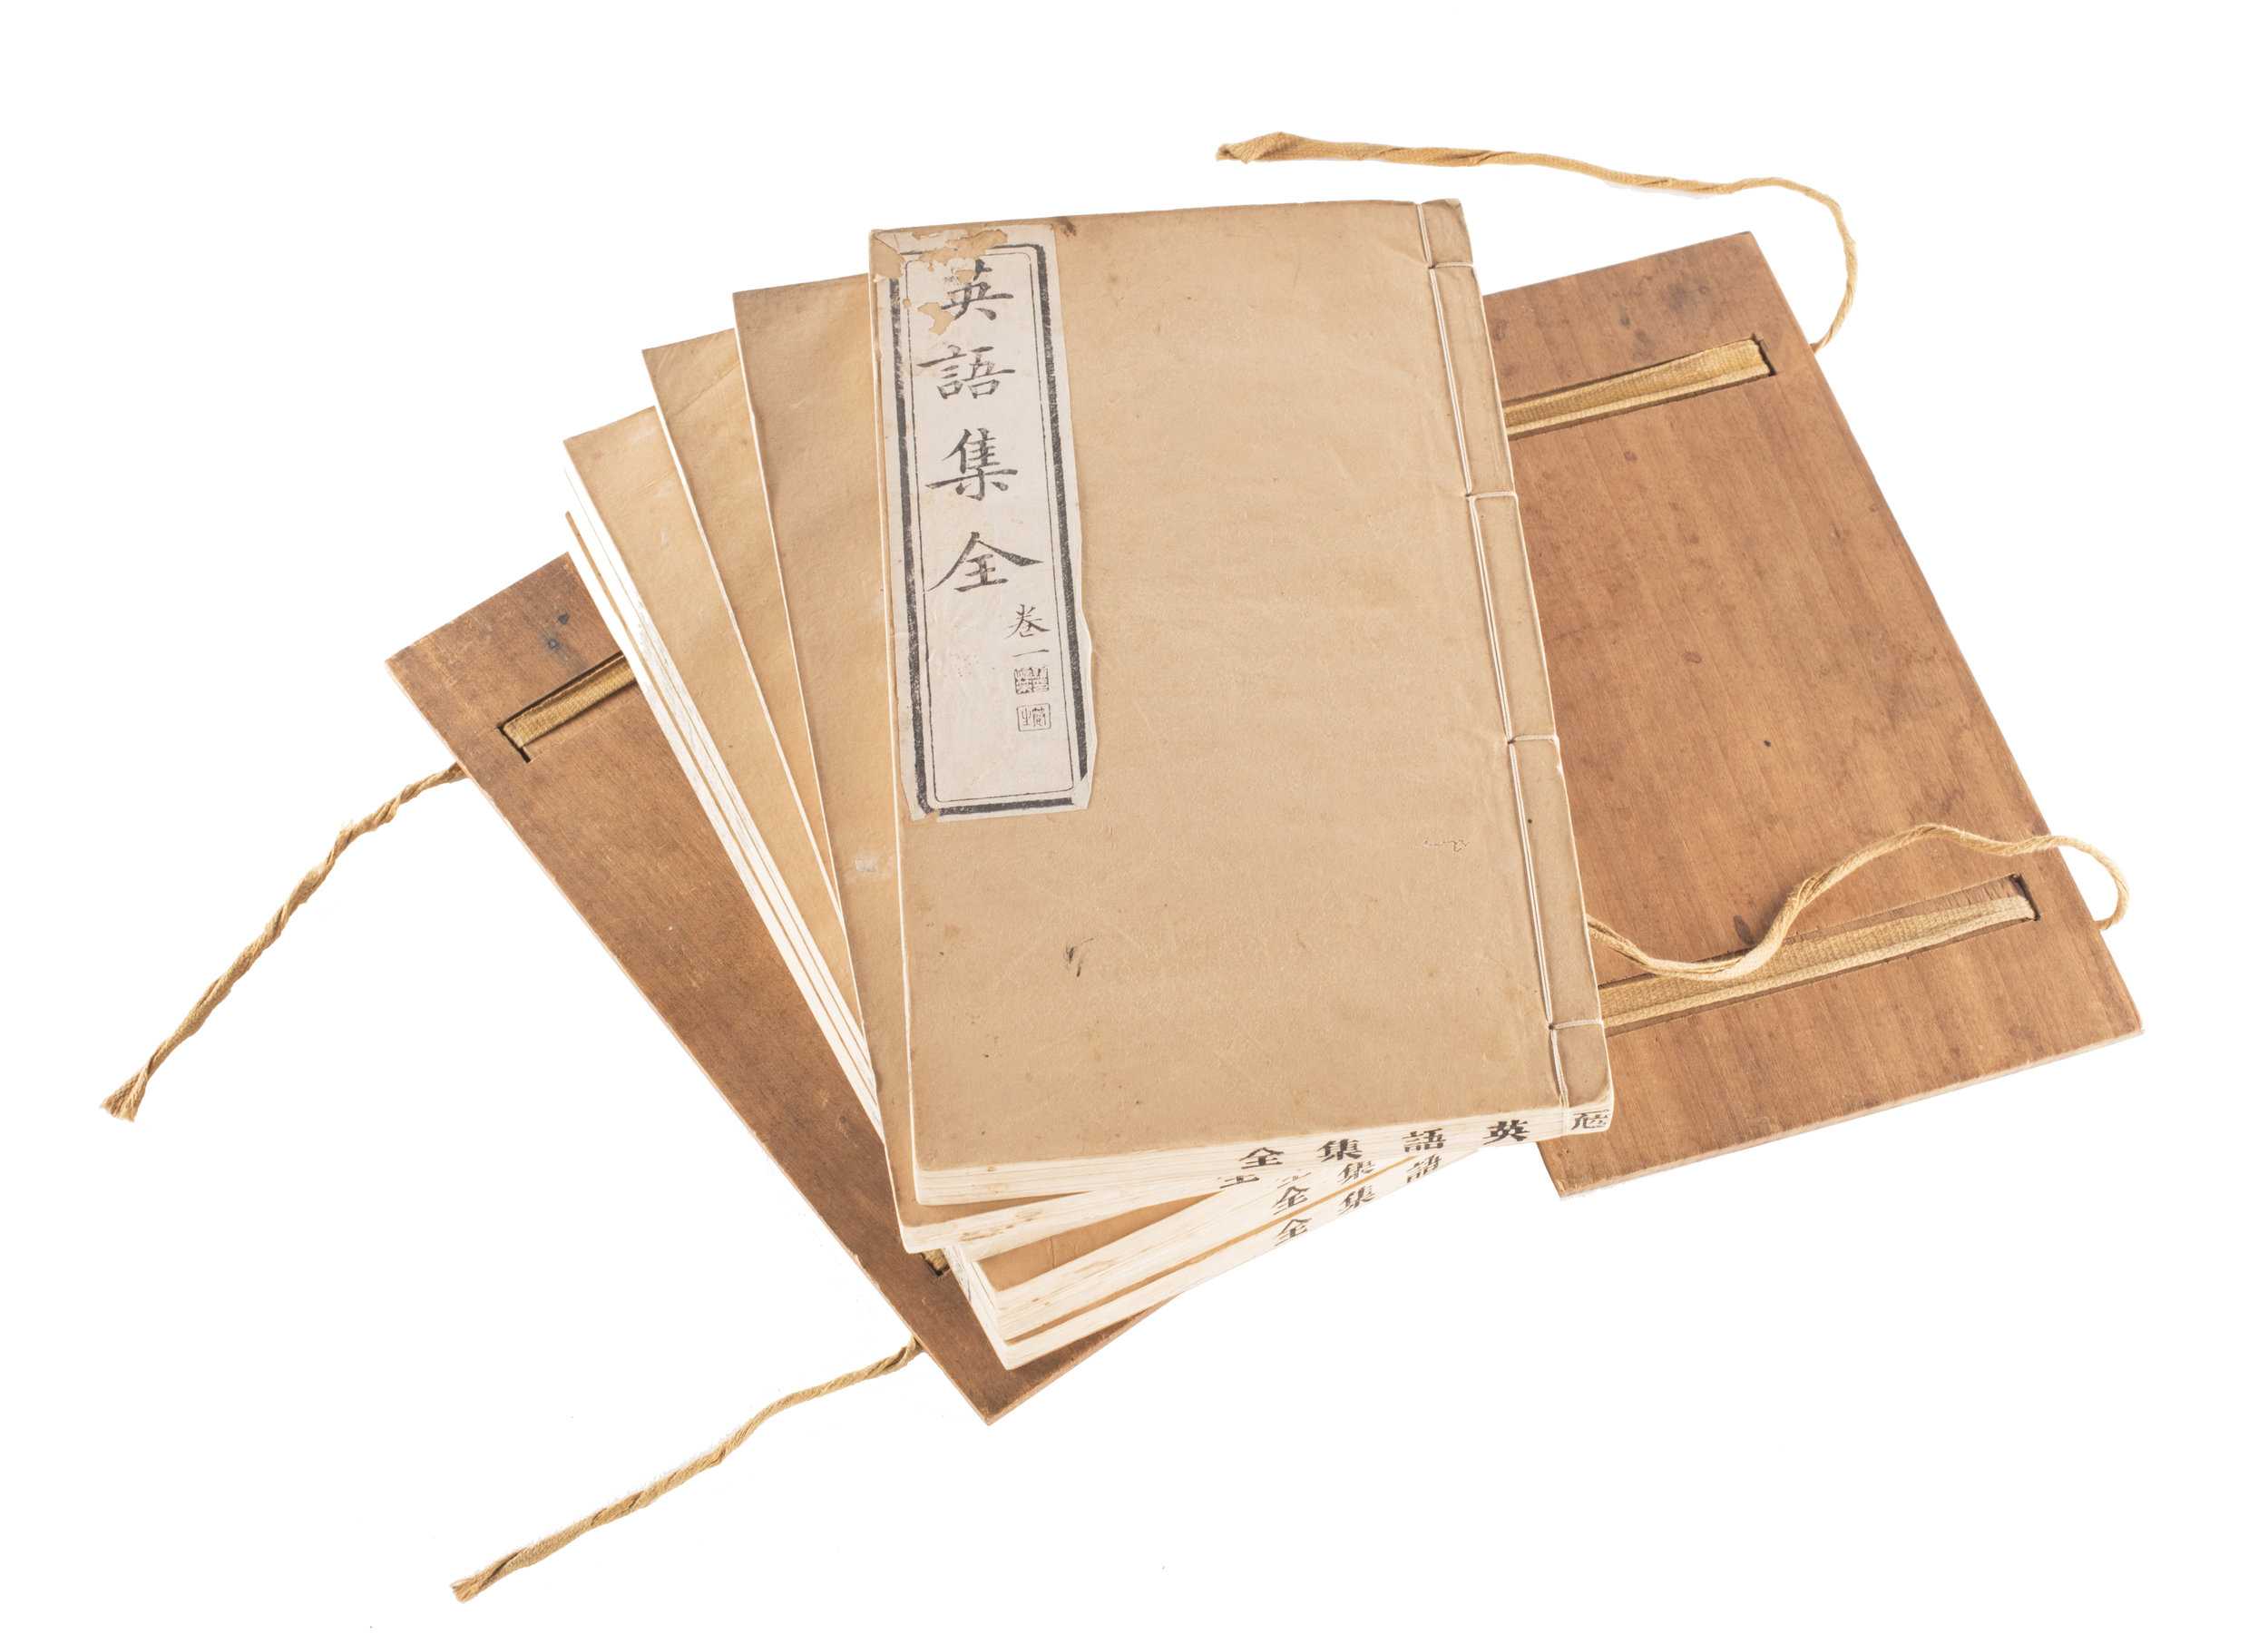 Ying ü Tsap Ts'ün, or the Chinese and English Instructor, Canton, 1862